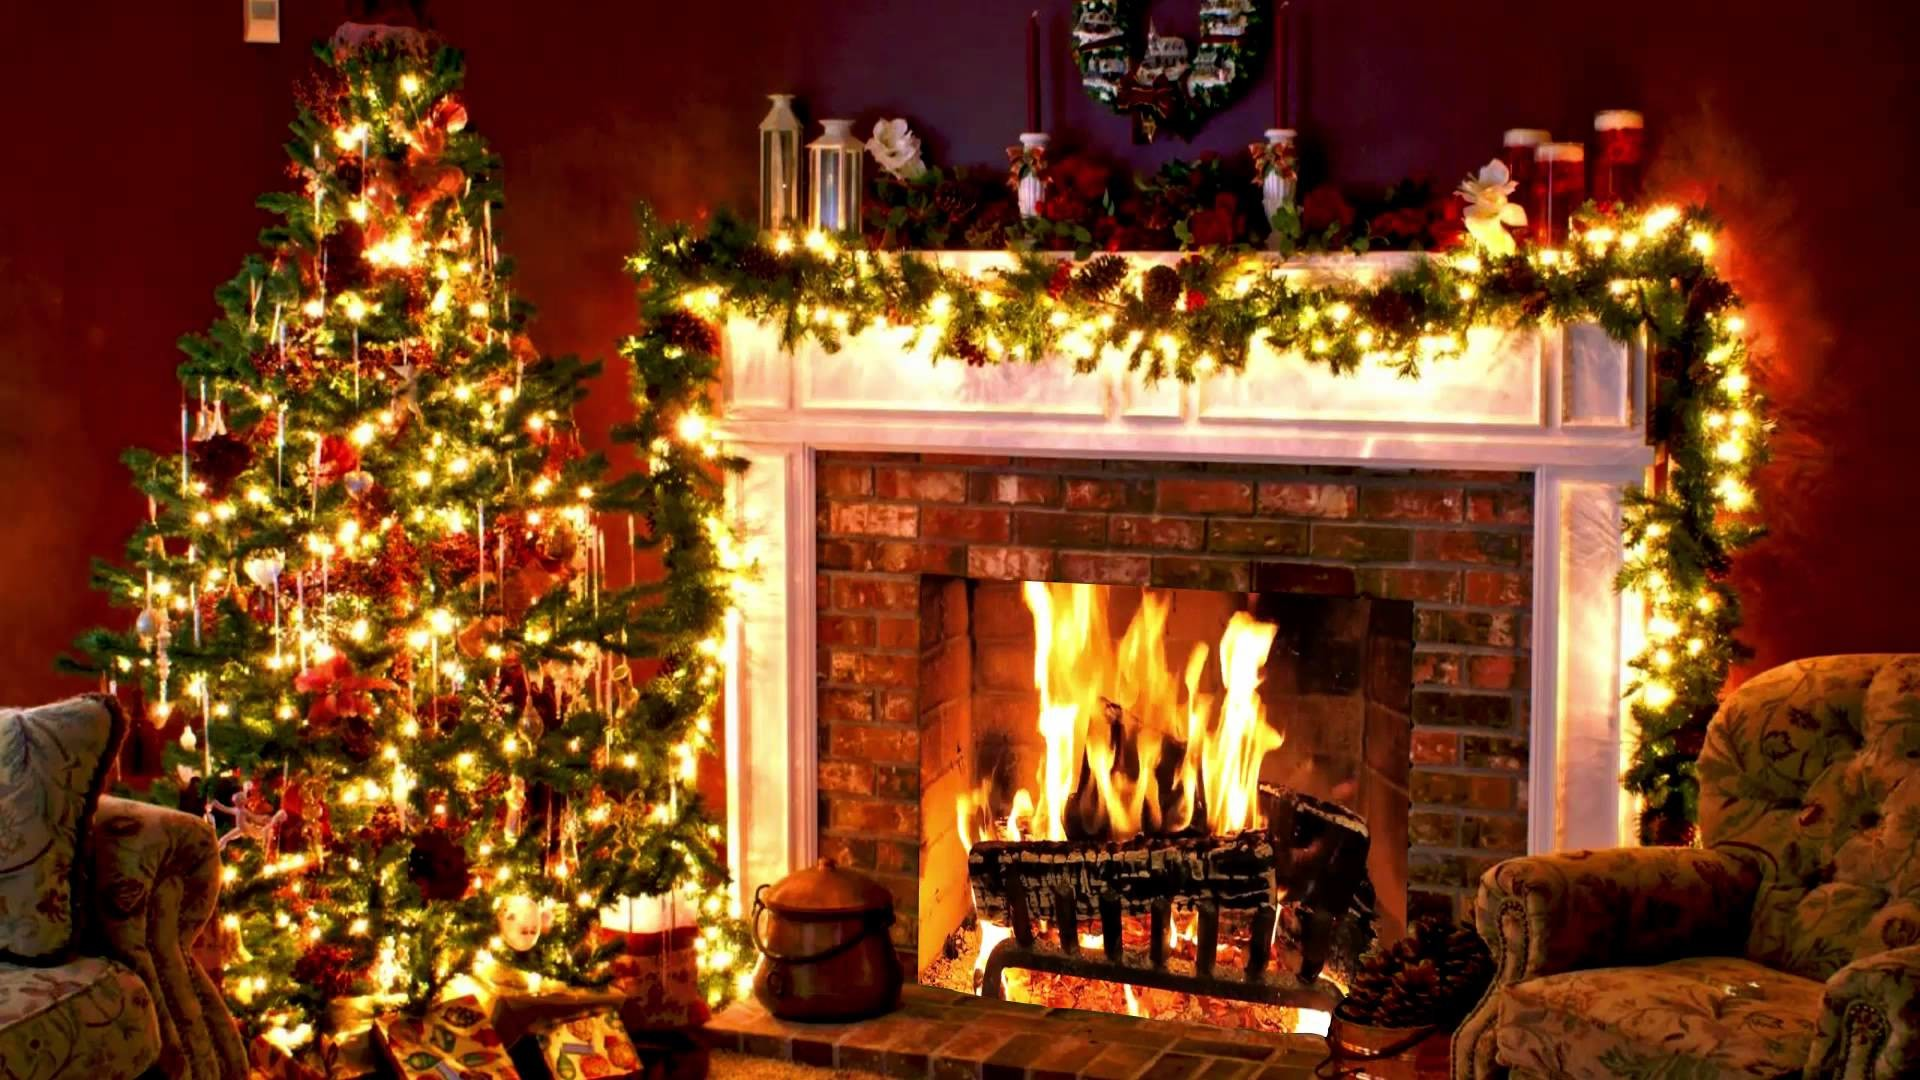 Christmas Fireplace Wallpaper 57 Images